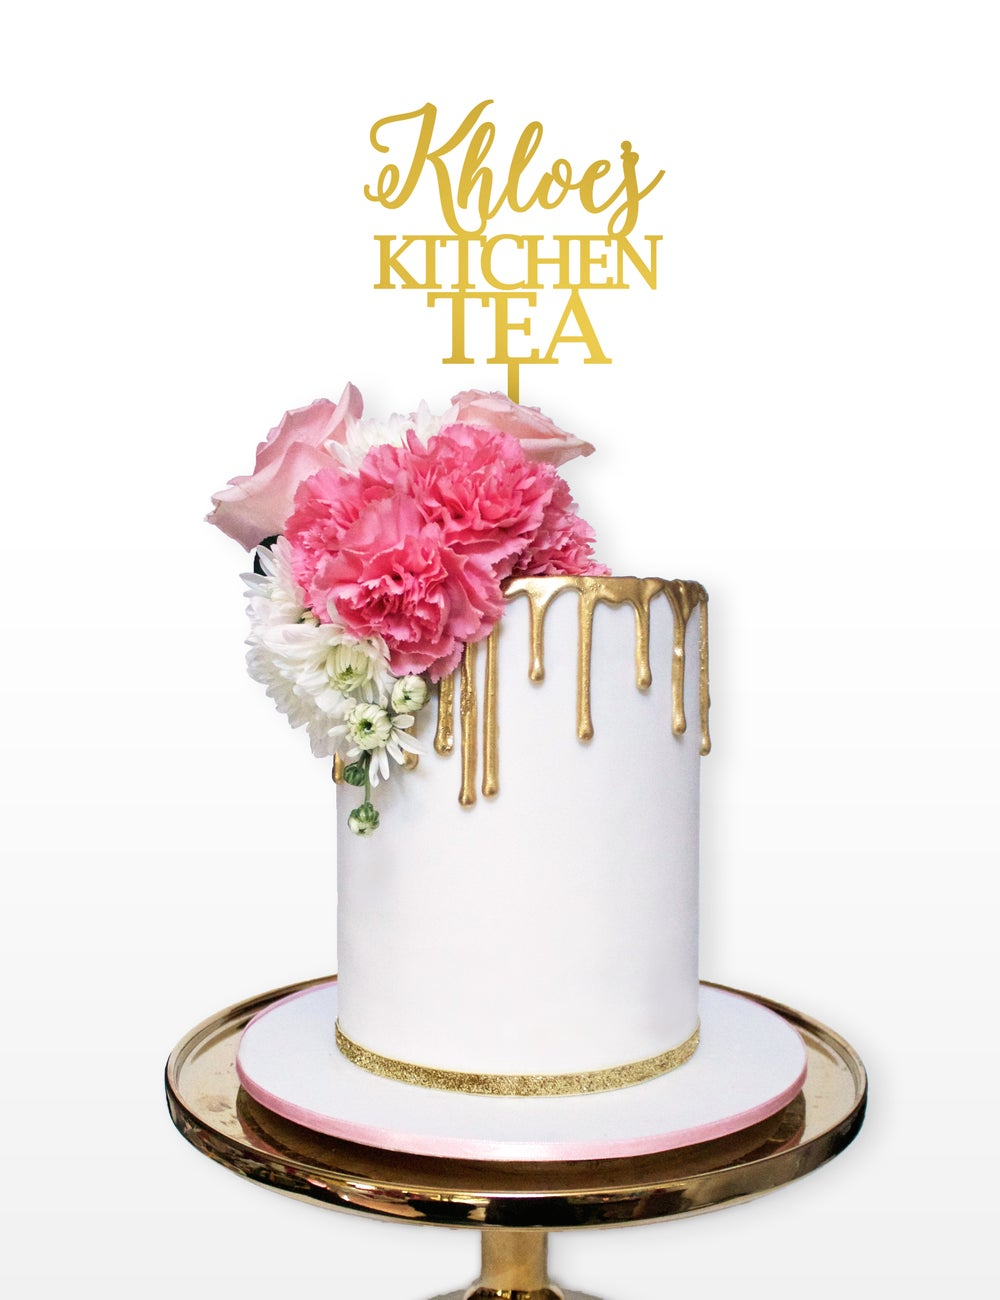 Image of Personalised Kitchen Tea Cake Topper